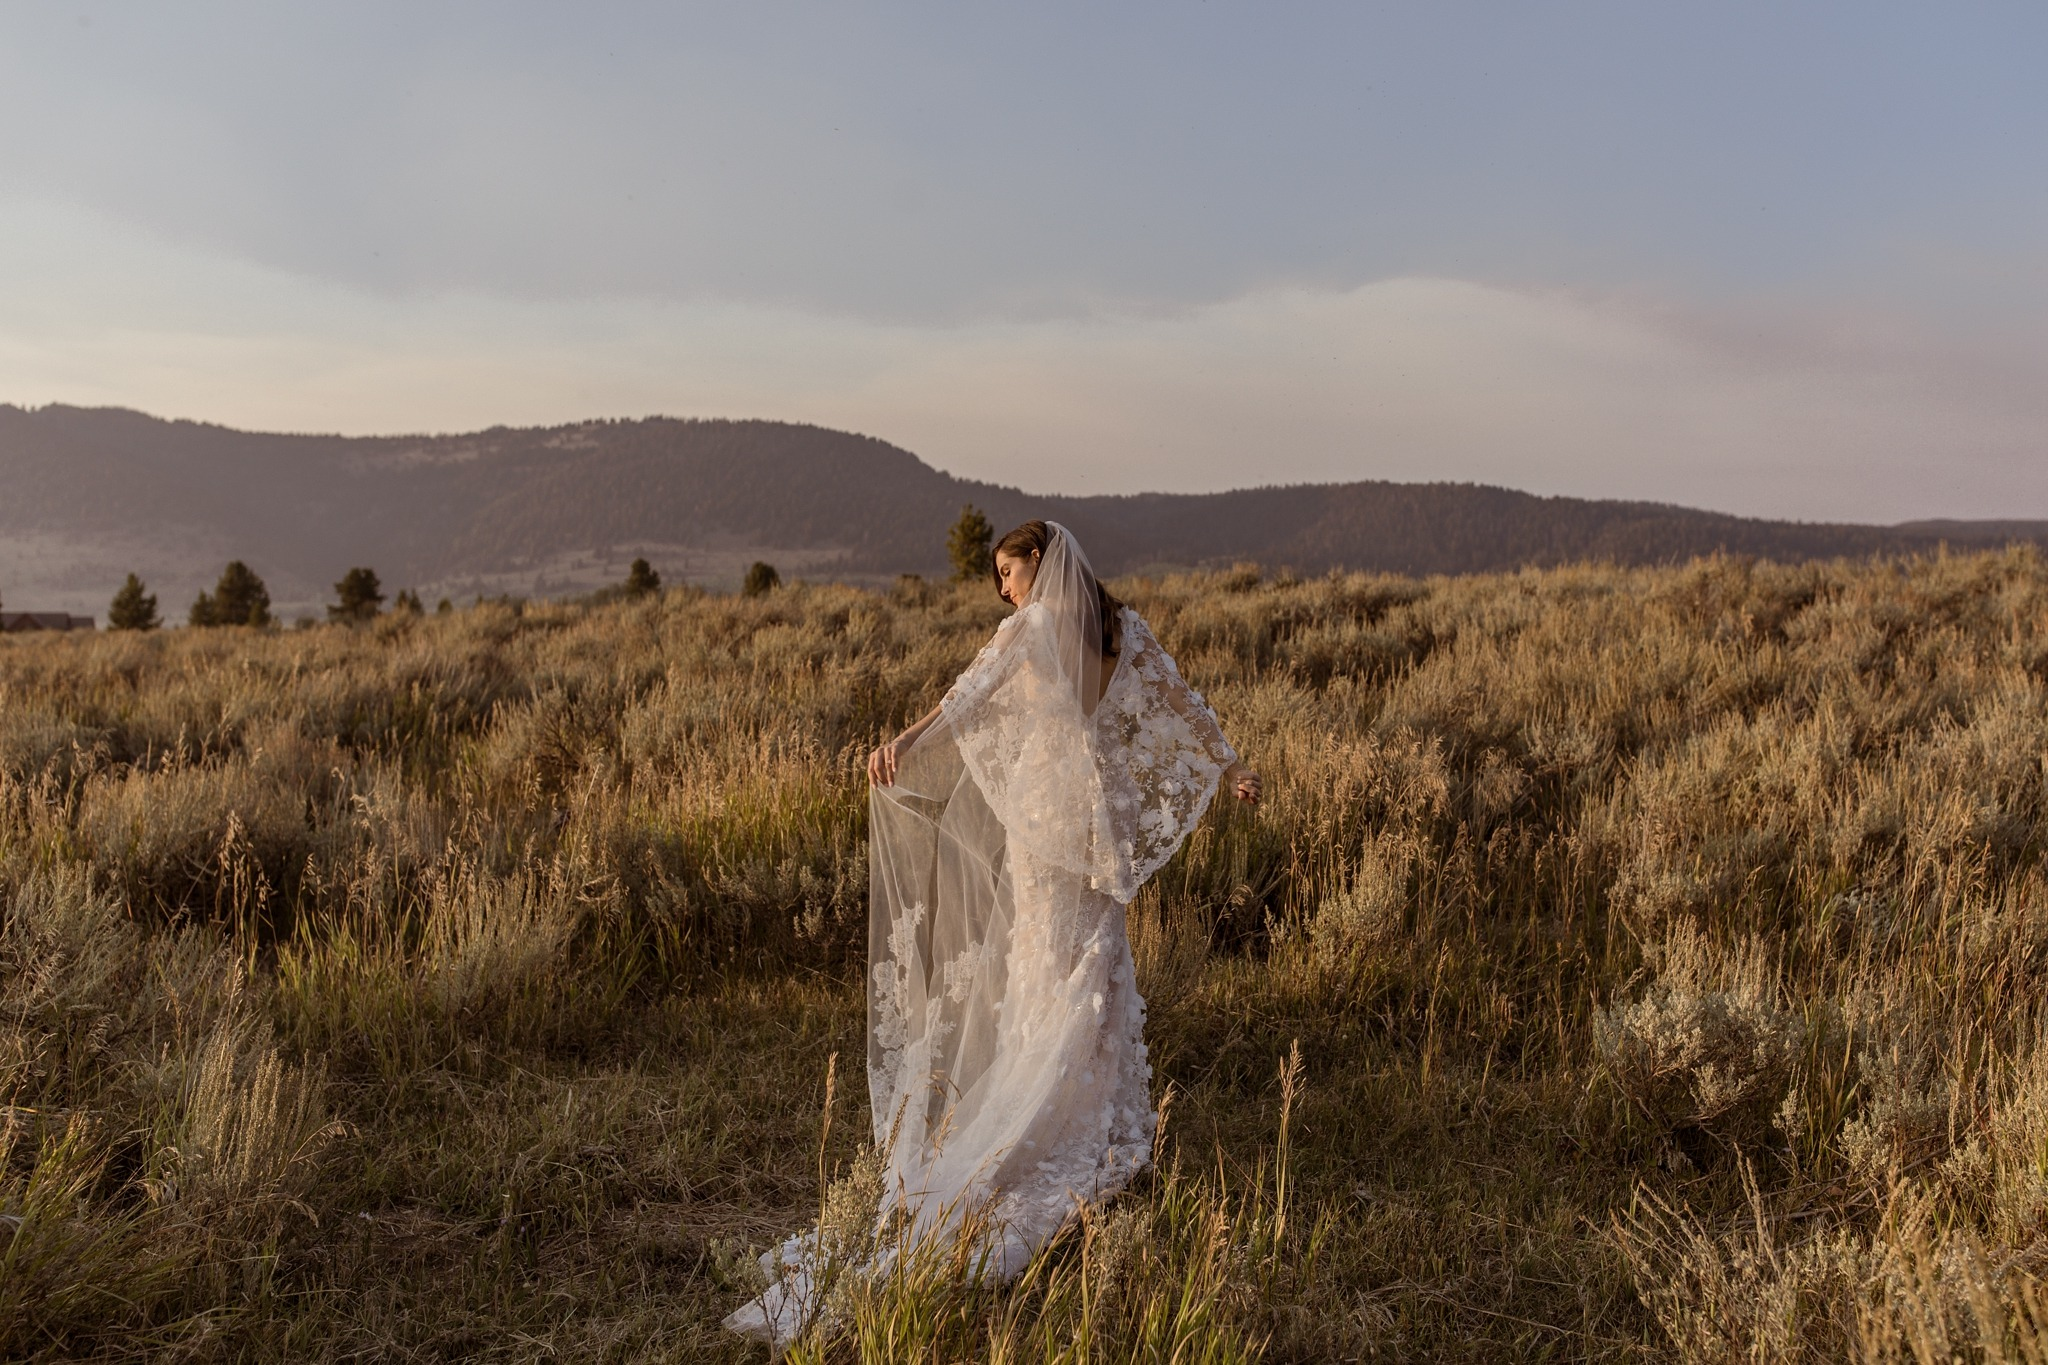 Marchesa wedding dress for Montana wedding with Top Wedding Photographer Sarah Falugo